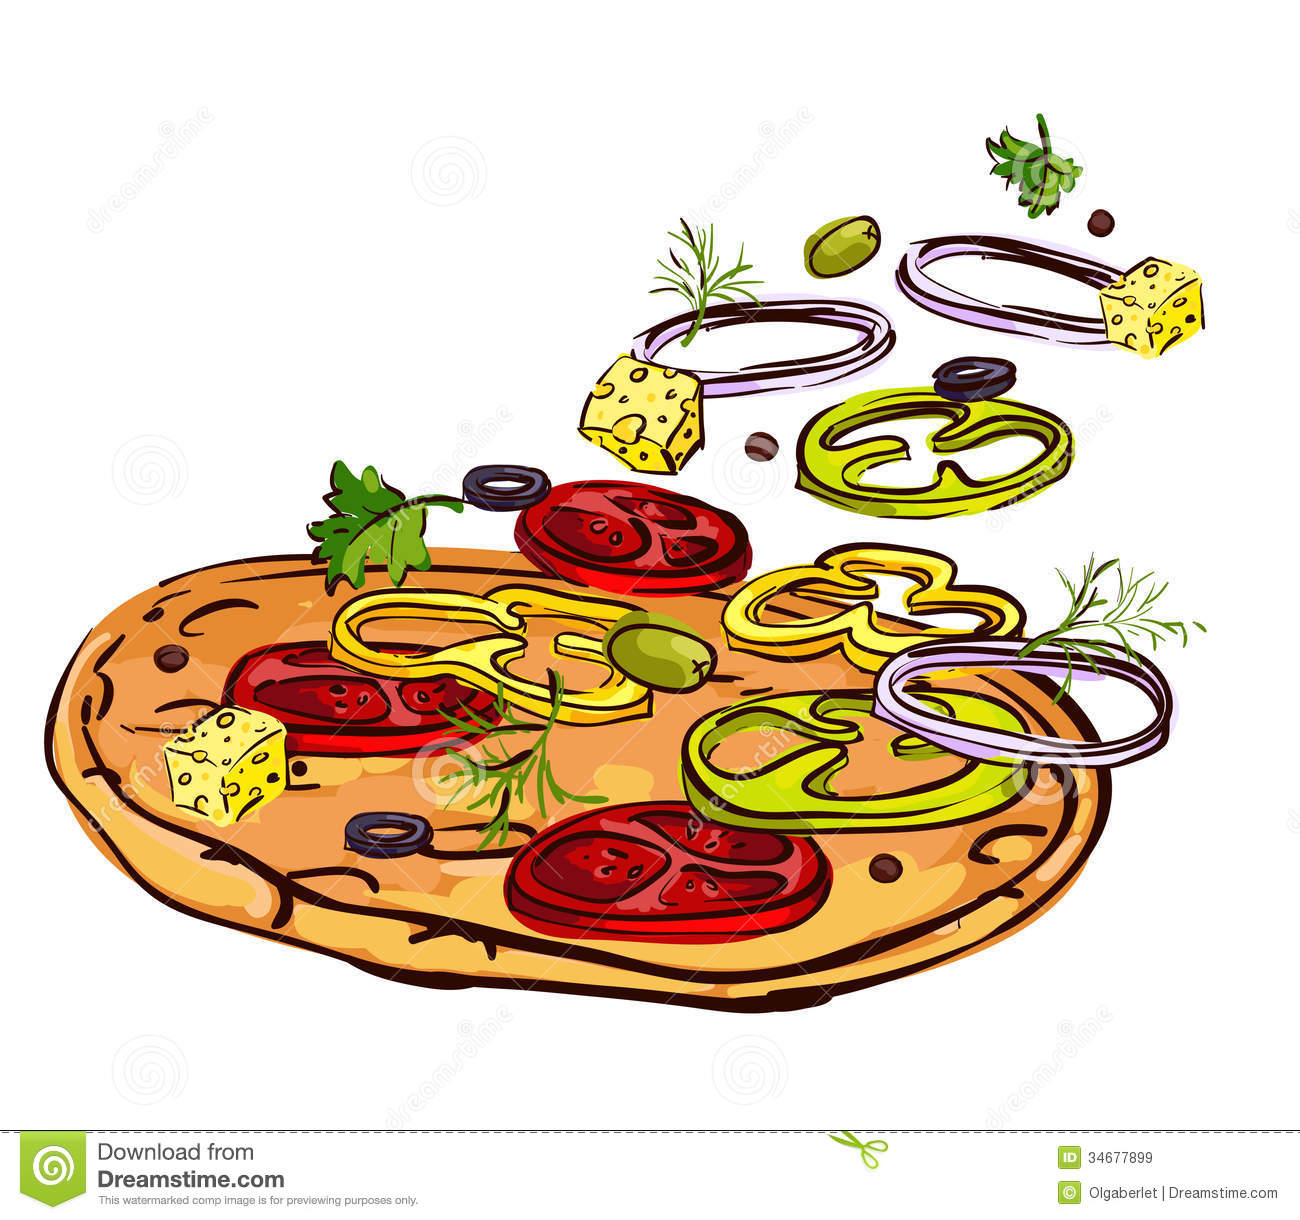 cheese pizza clipart free - photo #50